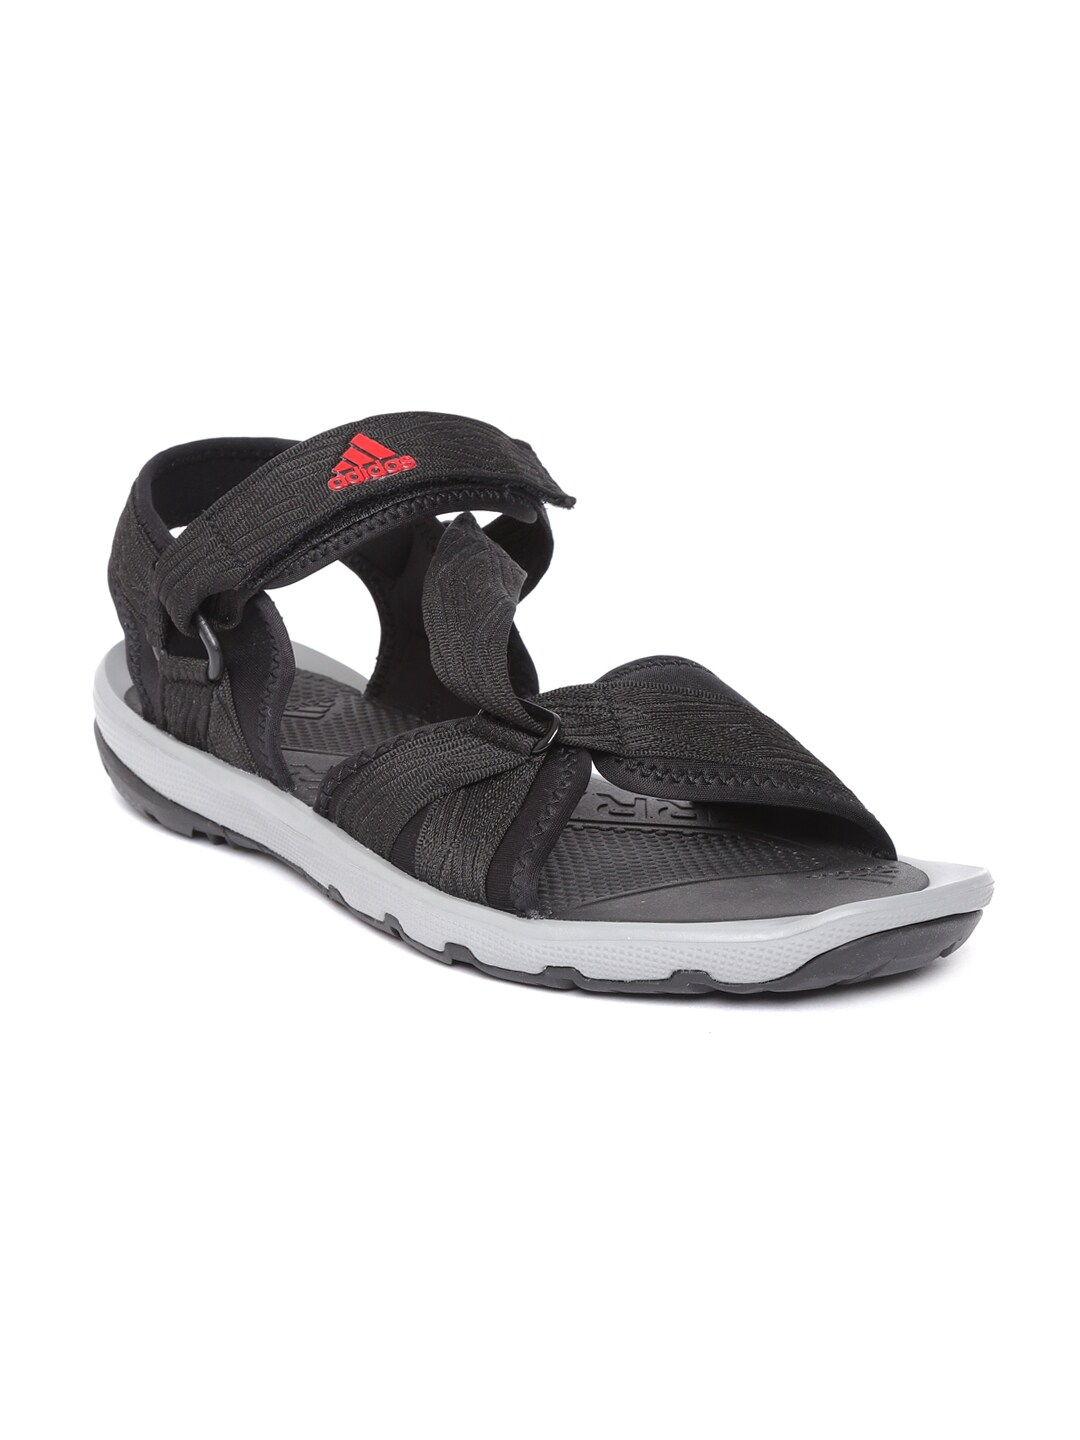 9114a86771a2 Adidas Terra Sports Sandals - Buy Adidas Terra Sports Sandals online in  India